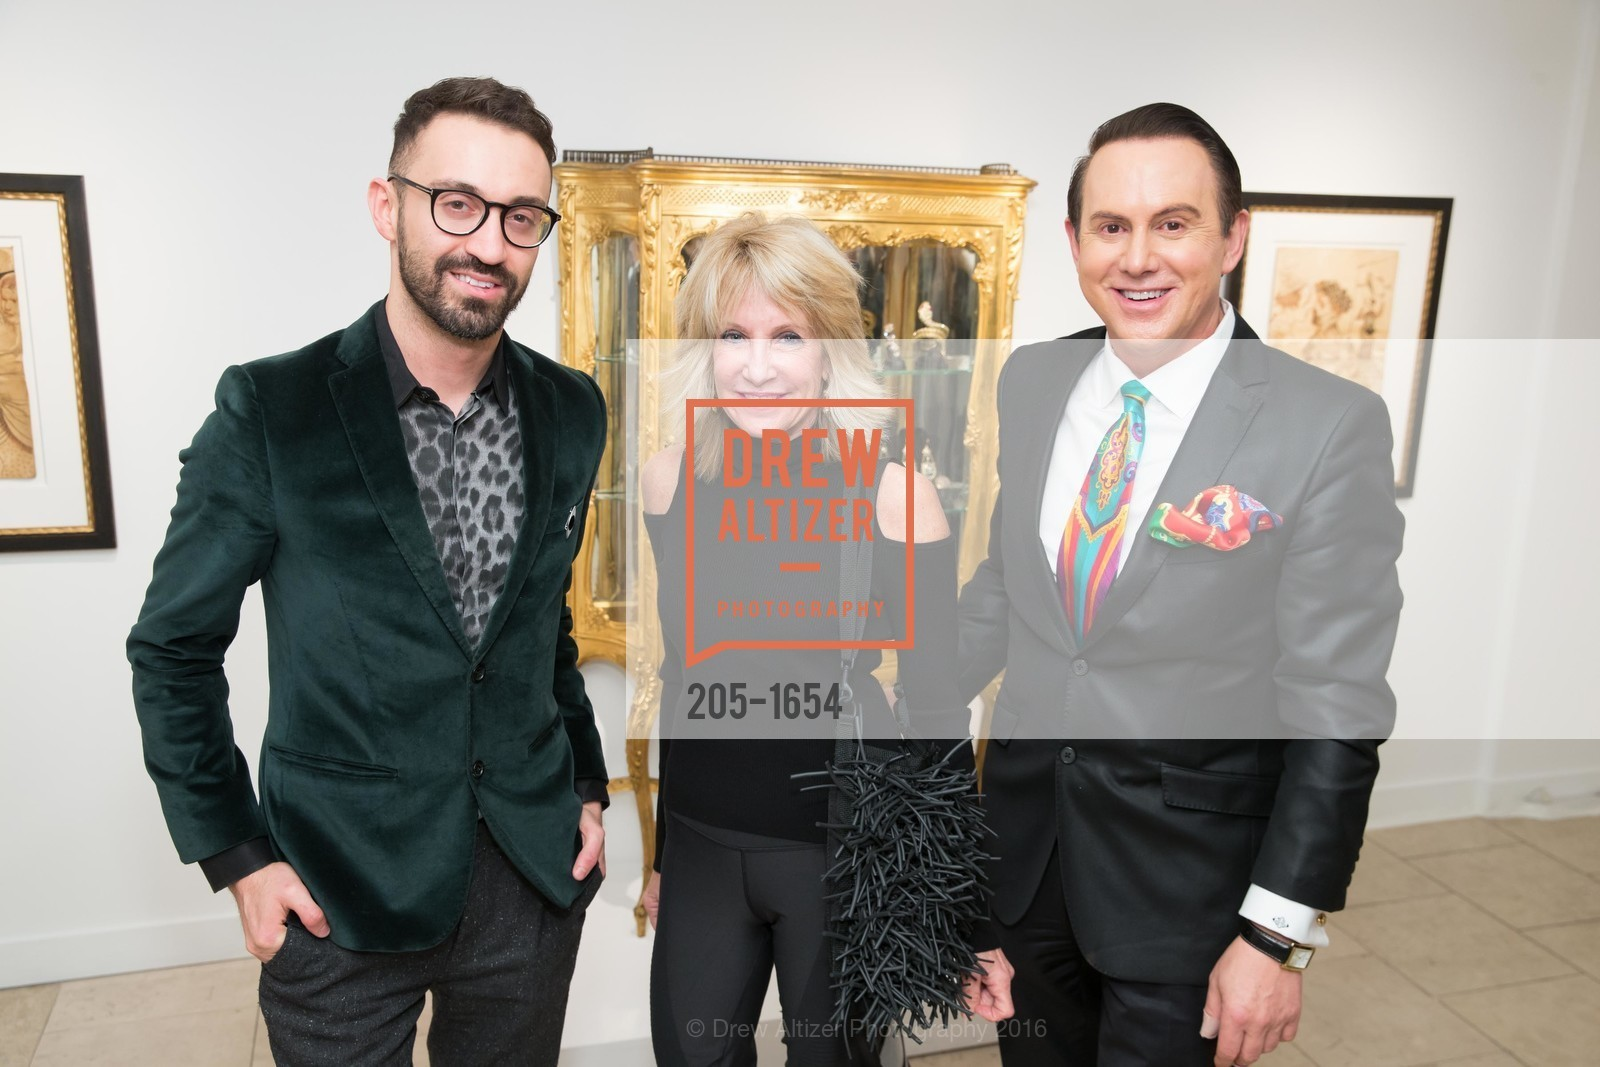 Stephen Rabinov, Sandy Mandel, Joel Goodrich, Sorokko Gallery Hosts Coveted Jewels by Codognato Private Reception, Serge Sorokko Gallery. 55 Geary St., San Francisco, December 8th, 2016